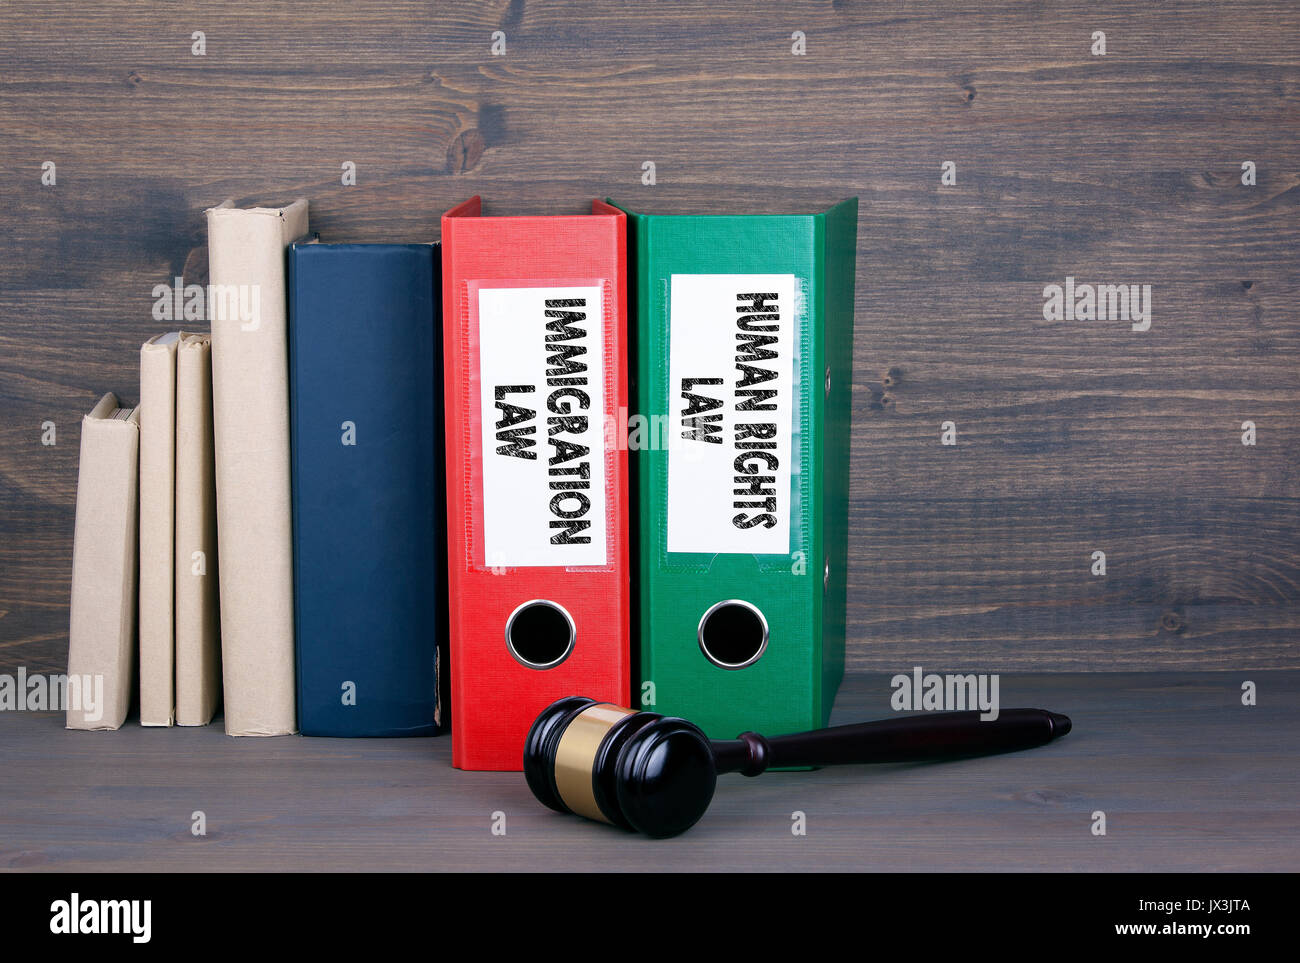 Immigration and Human Rights Law. Wooden gavel and books in background. Law and justice concept. - Stock Image